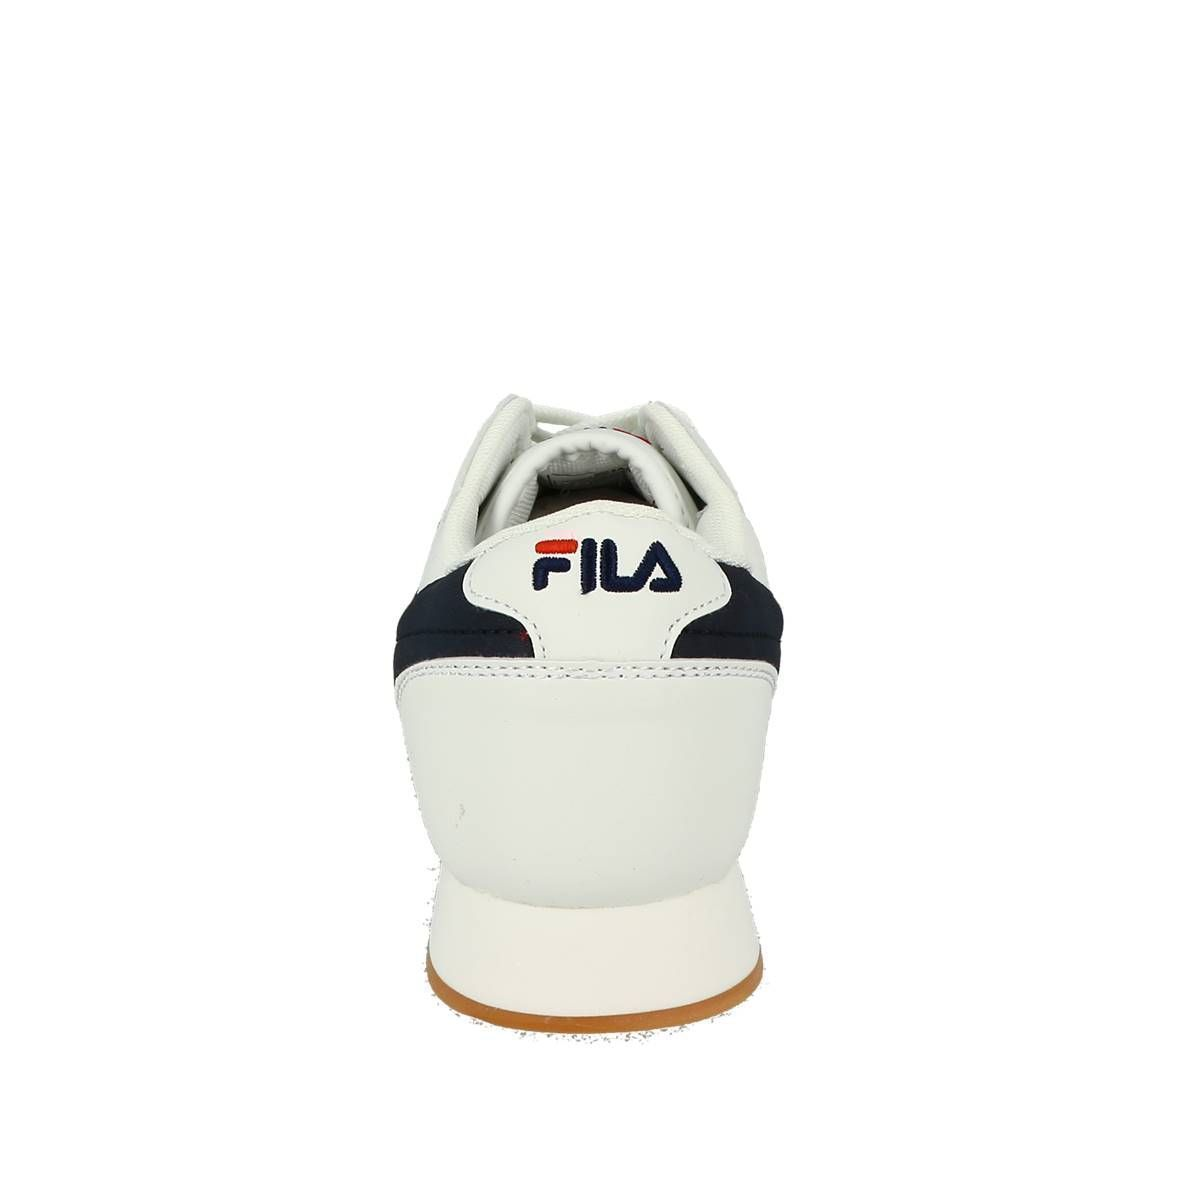 Fila homme orbit low blanc1705201_5